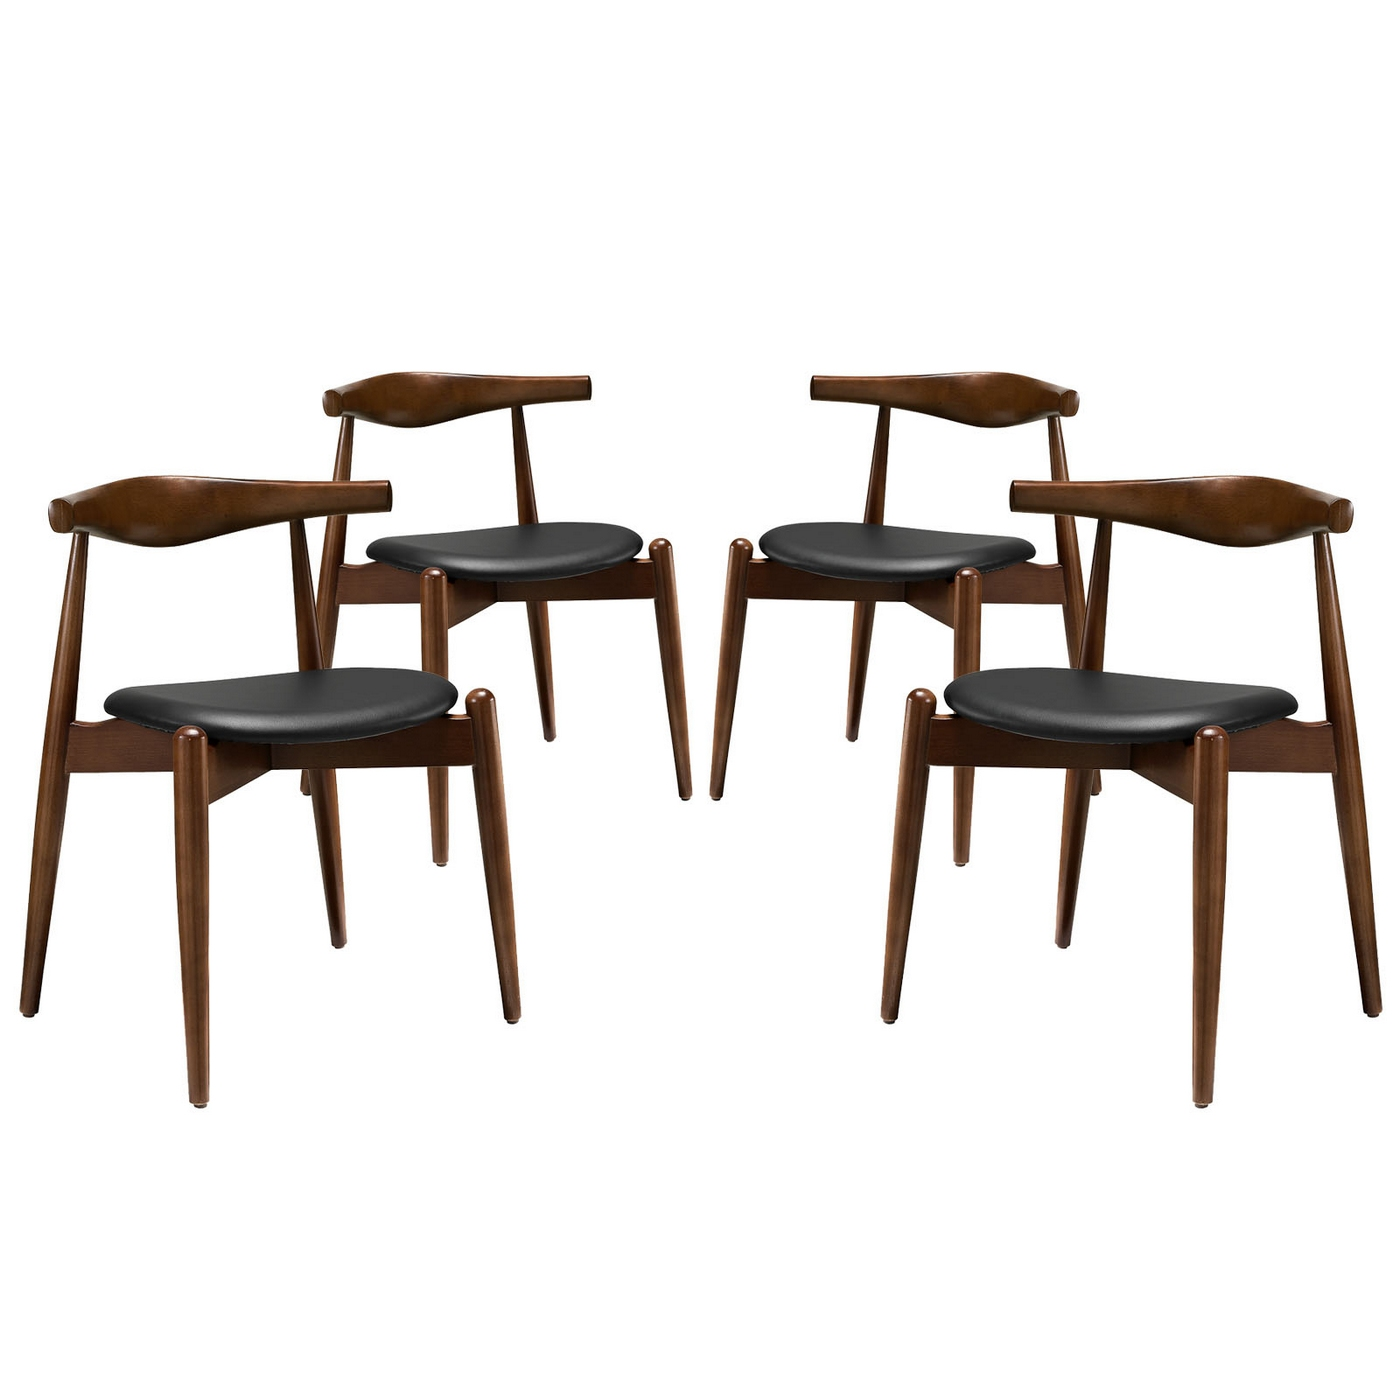 Set of 4 stalwart contemporary wood dining side chairs w for Upholstered dining chairs contemporary